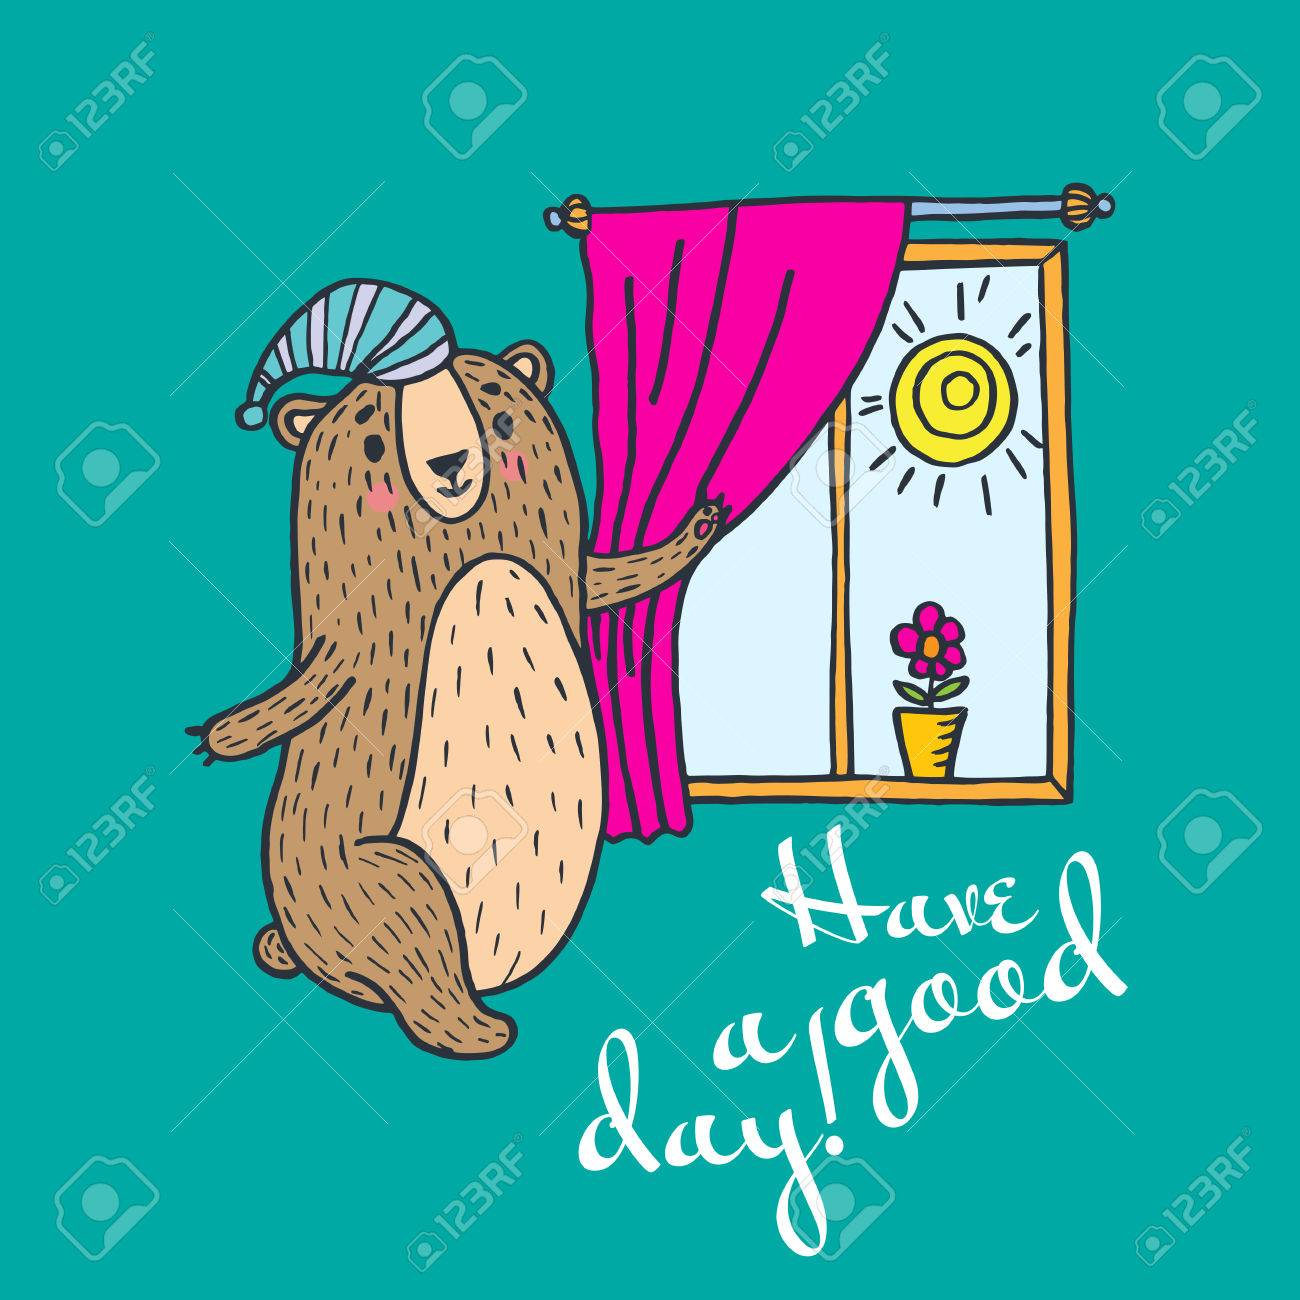 Have a good day greeting card vector illustration card with teddy have a good day greeting card vector illustration card with teddy bear and window banque kristyandbryce Gallery